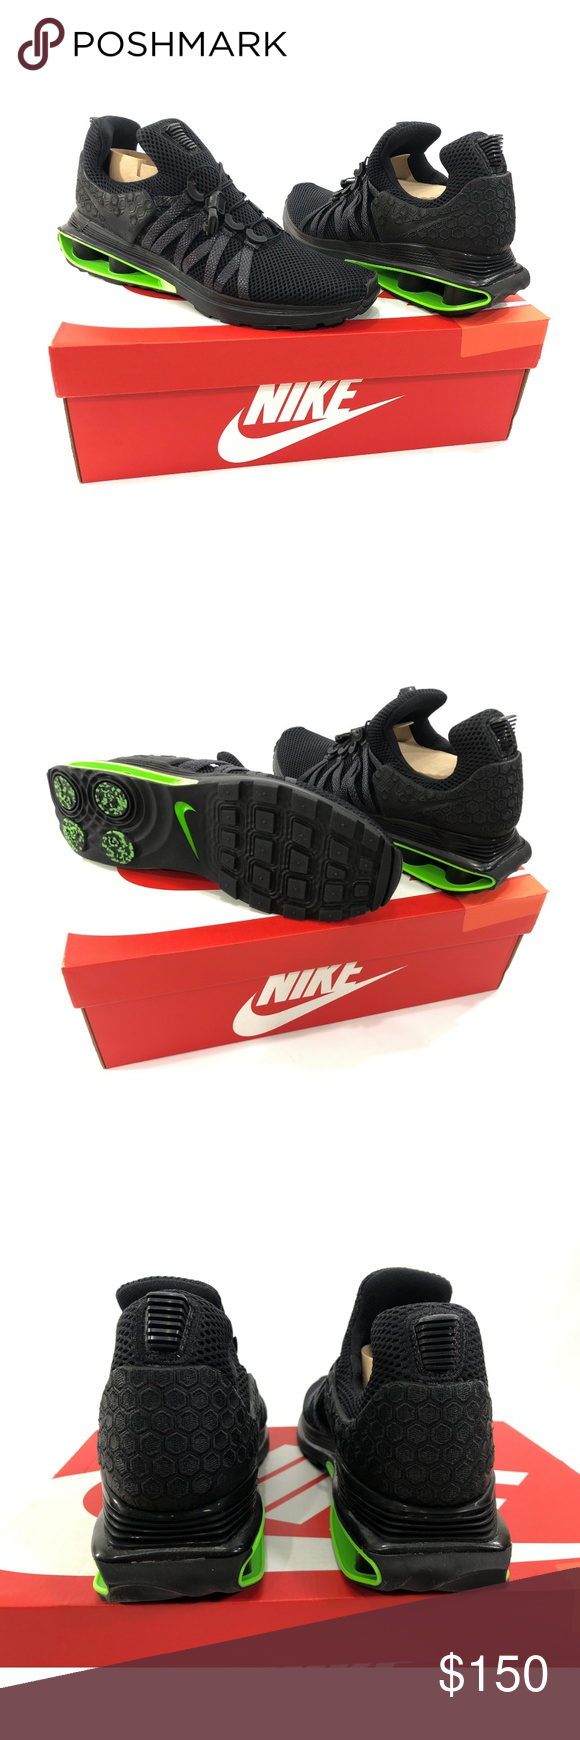 Nike Shox Gravity Luxe Mens Training Running Shoes NIKE AR1470-003 Nike  Shox Gravity Luxe Men s running shoes Size 9   9.5 Black   Green Strike Mid  top New ... 007852caf